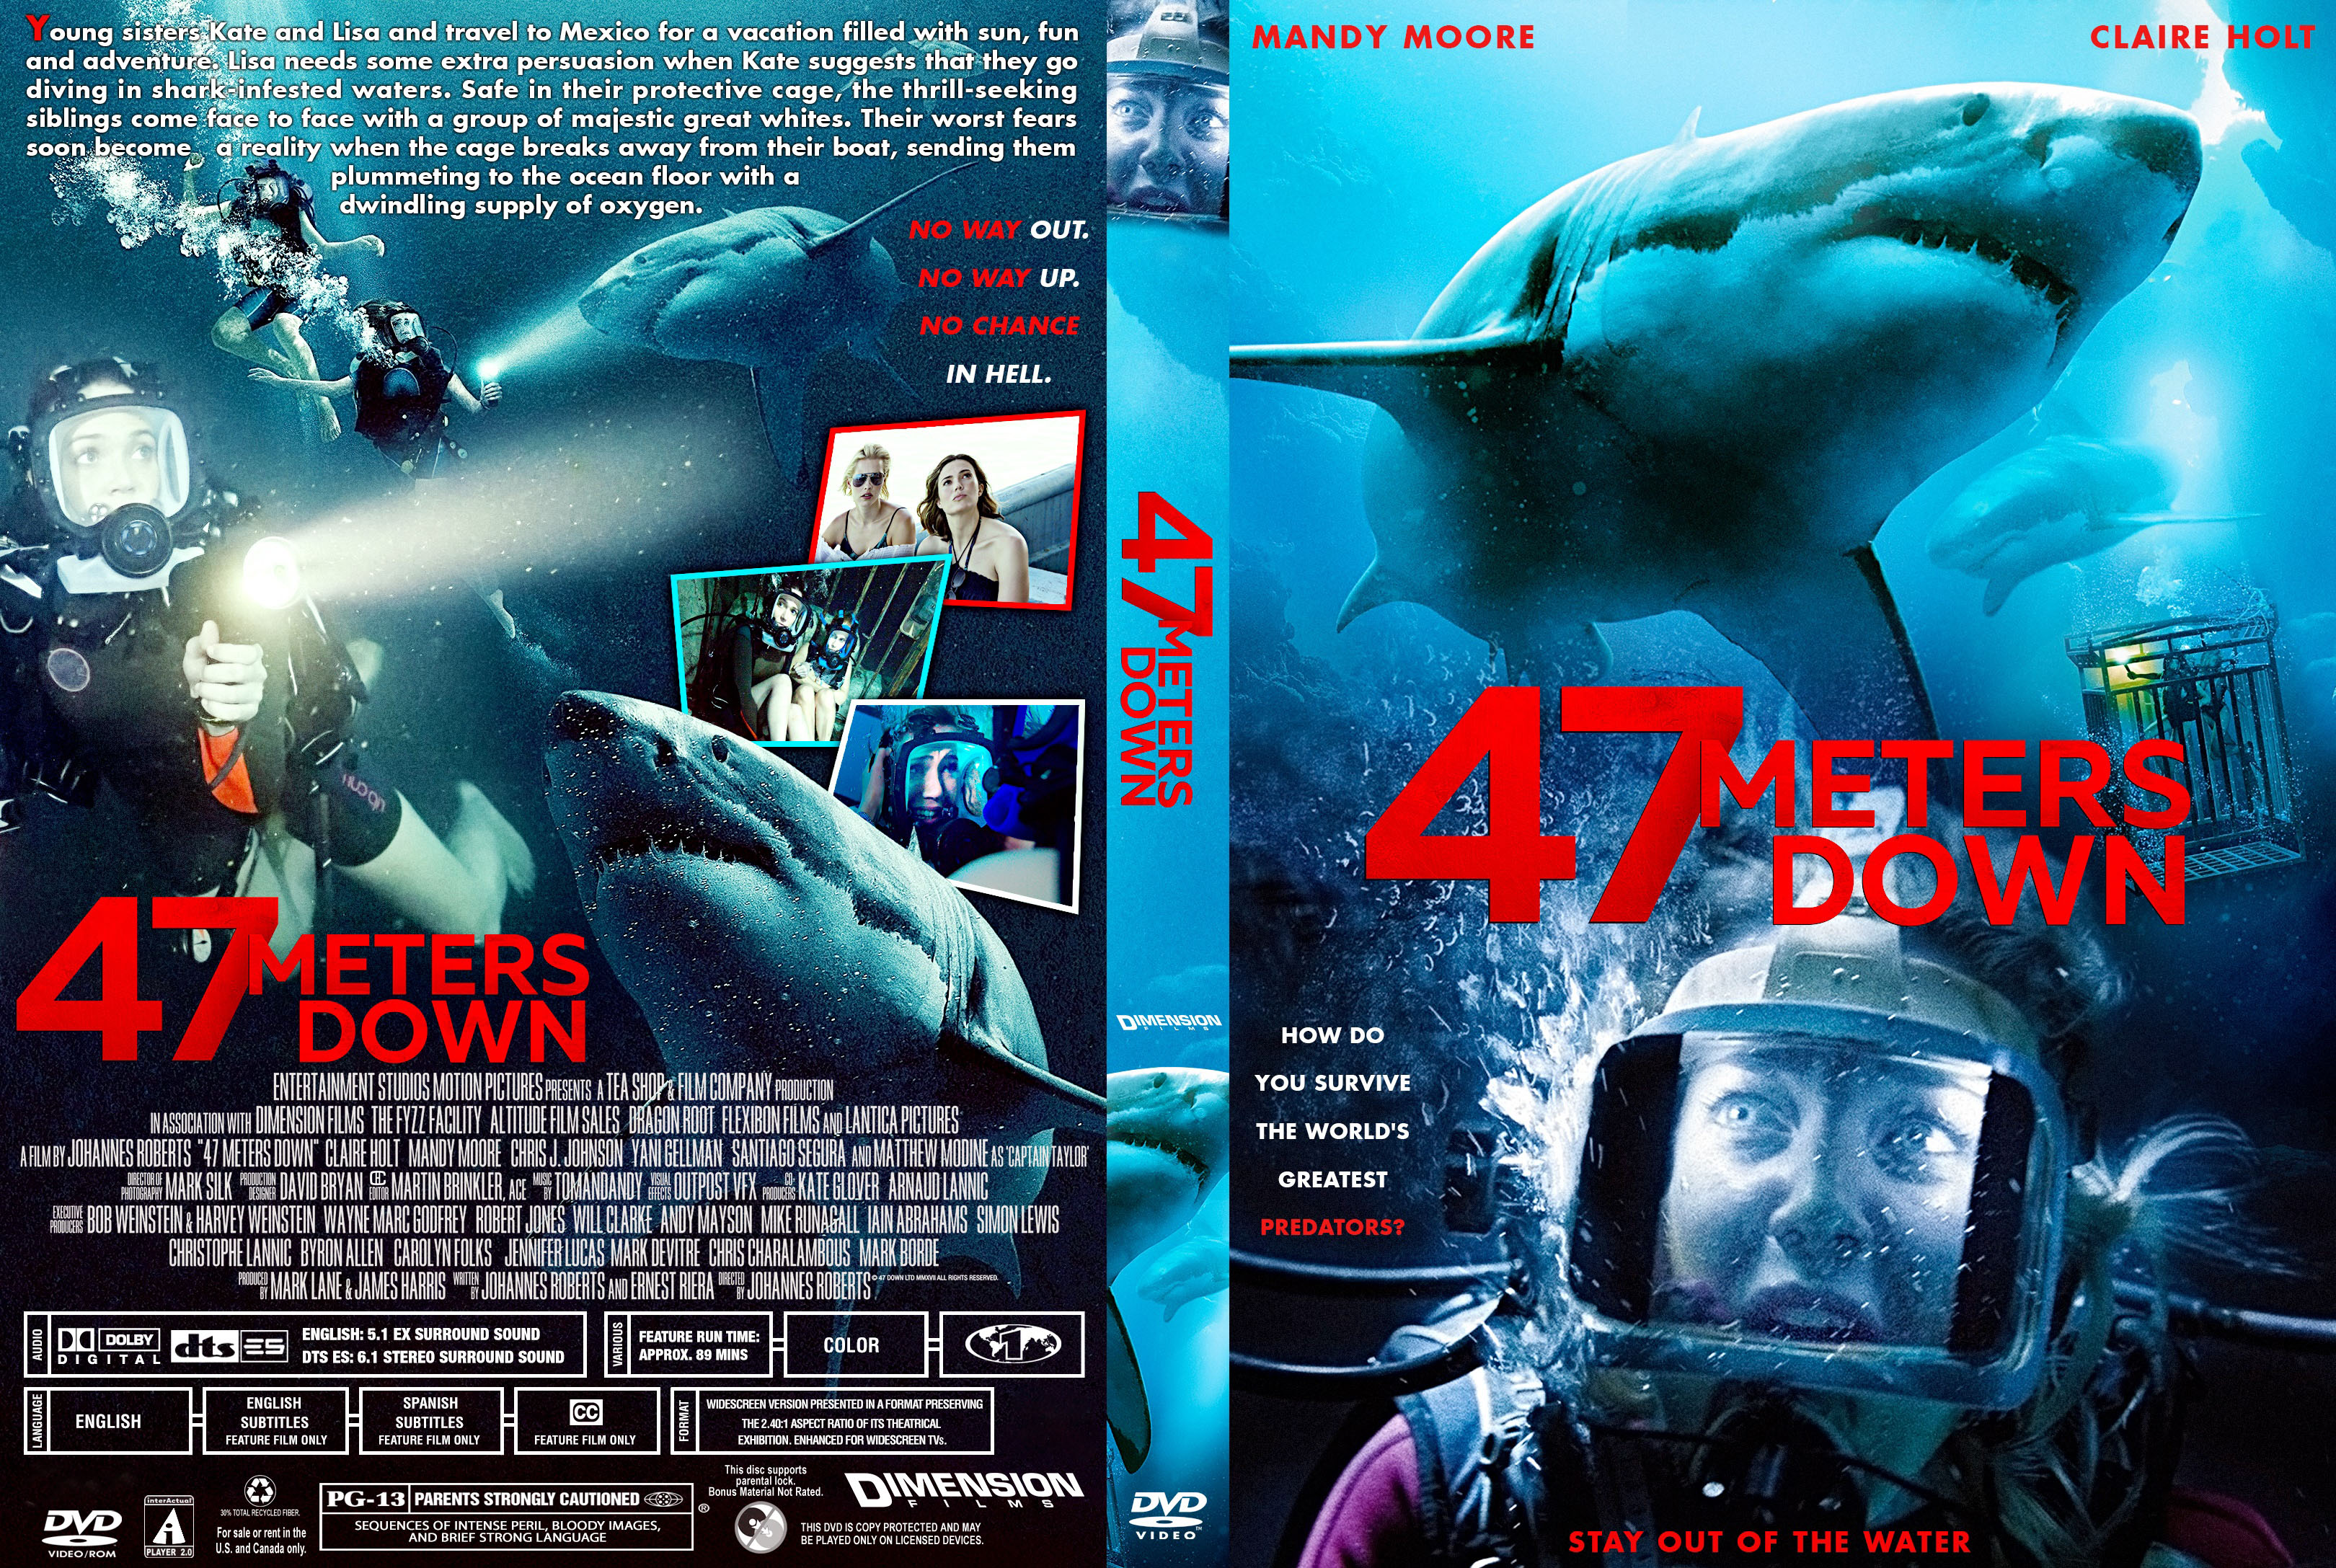 47 Meters Down DVD Cover   Cover Addict - Free DVD, Bluray Covers and Movie Posters